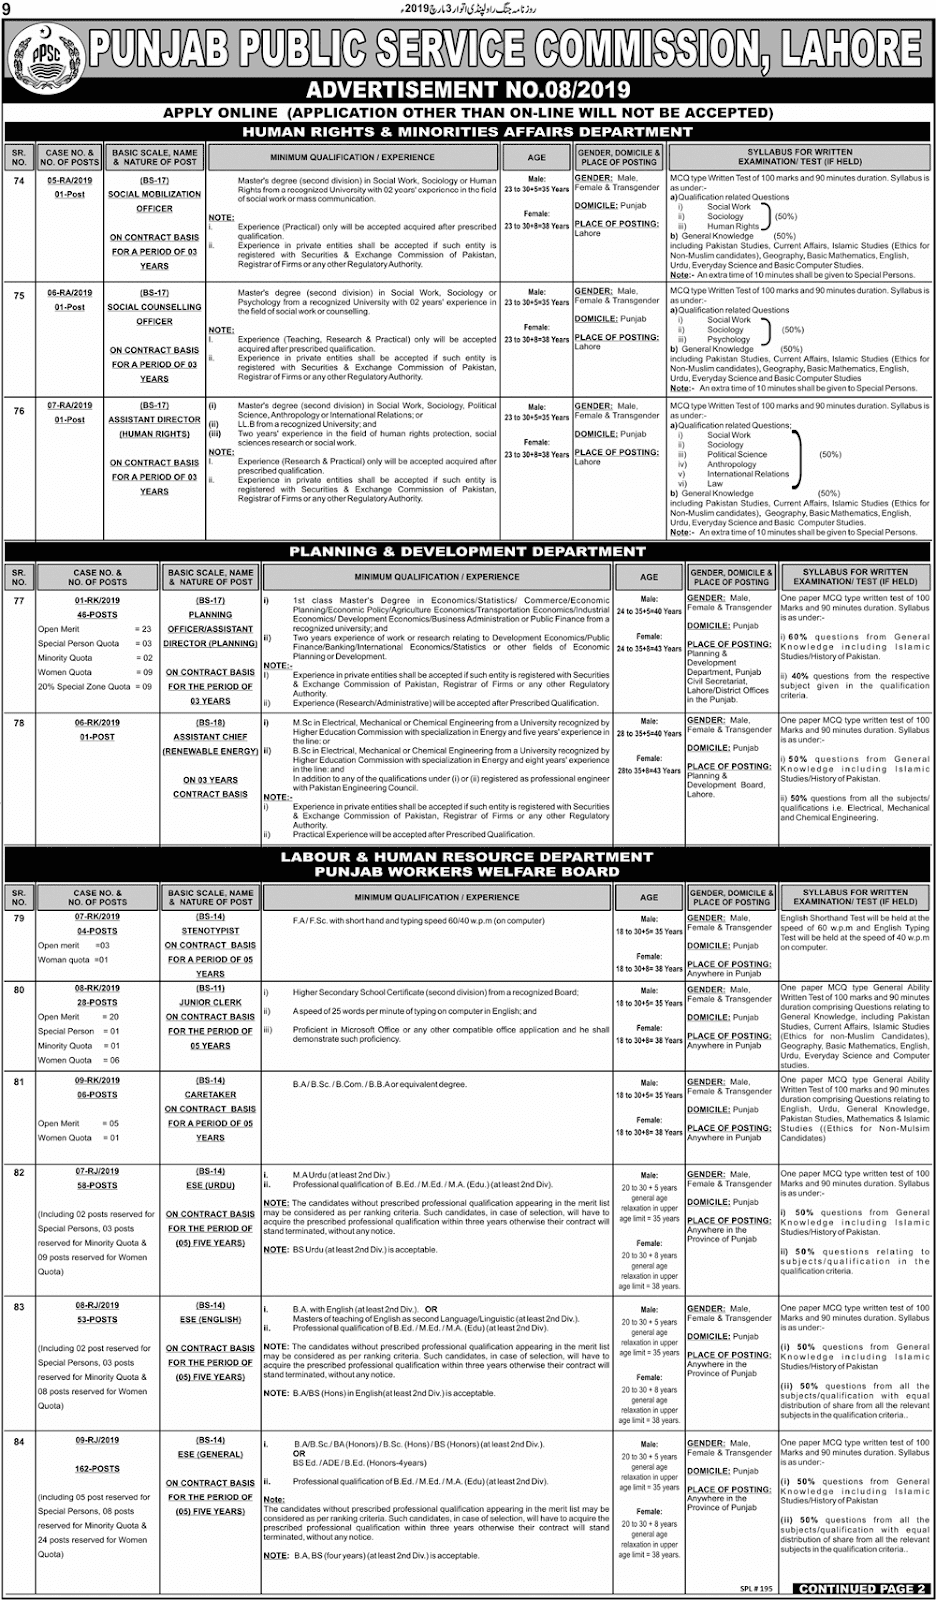 PPSC Advertisement 08/2019 Page No. 1/3